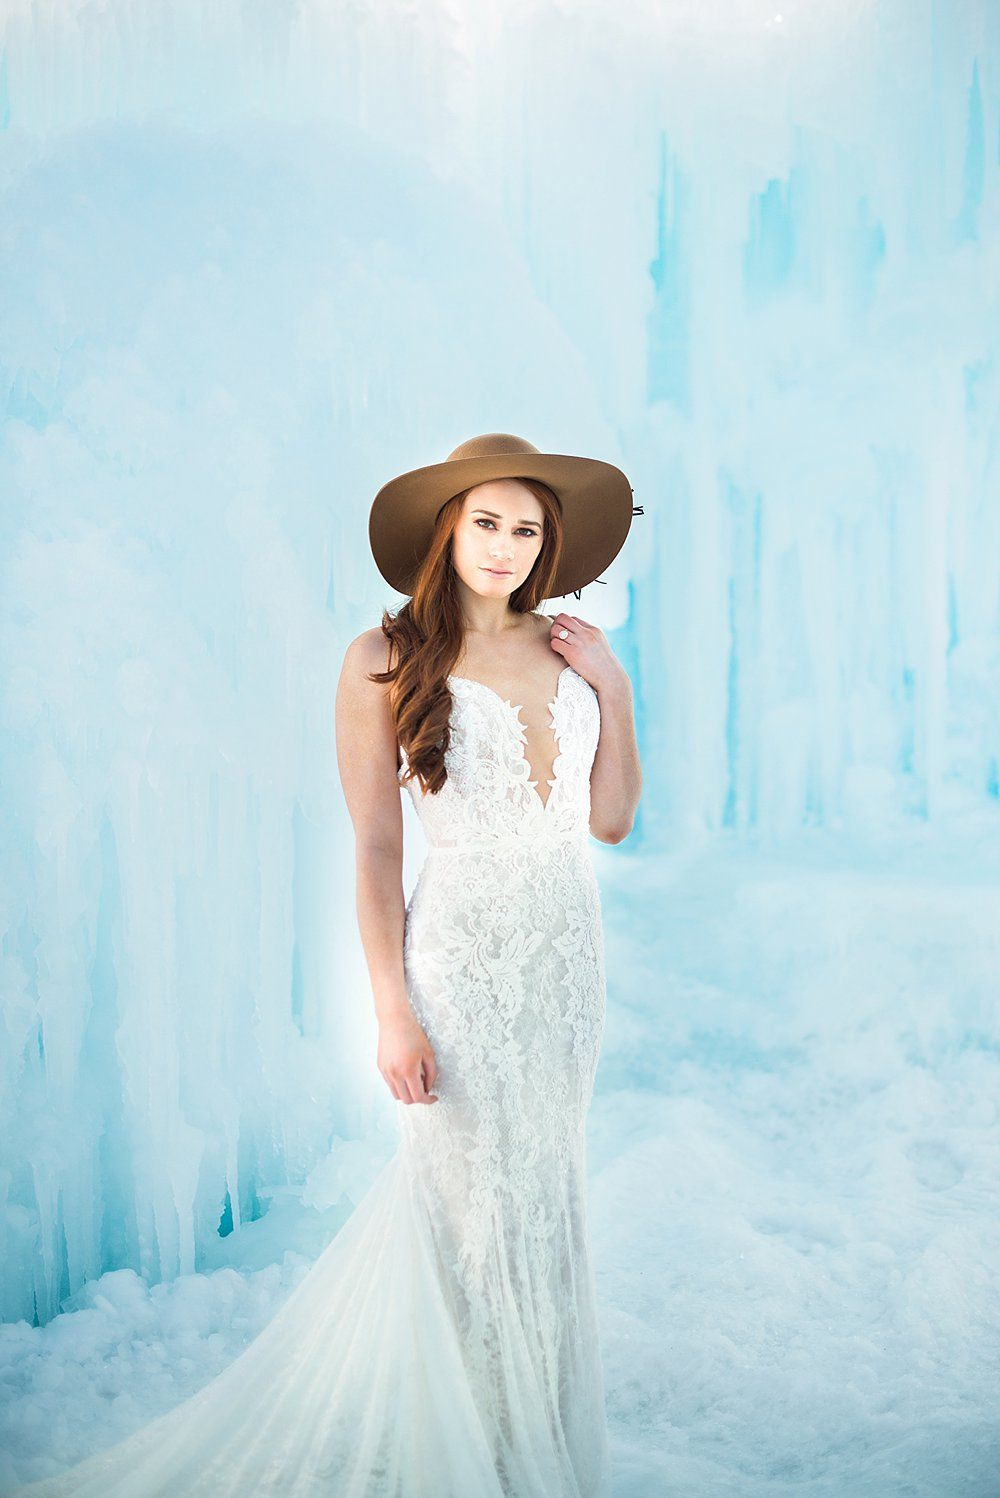 Teal and white wedding dresses  Vintage Fire and Ice Wedding Inspiration  A PRINCESS INSPIRED BLOG